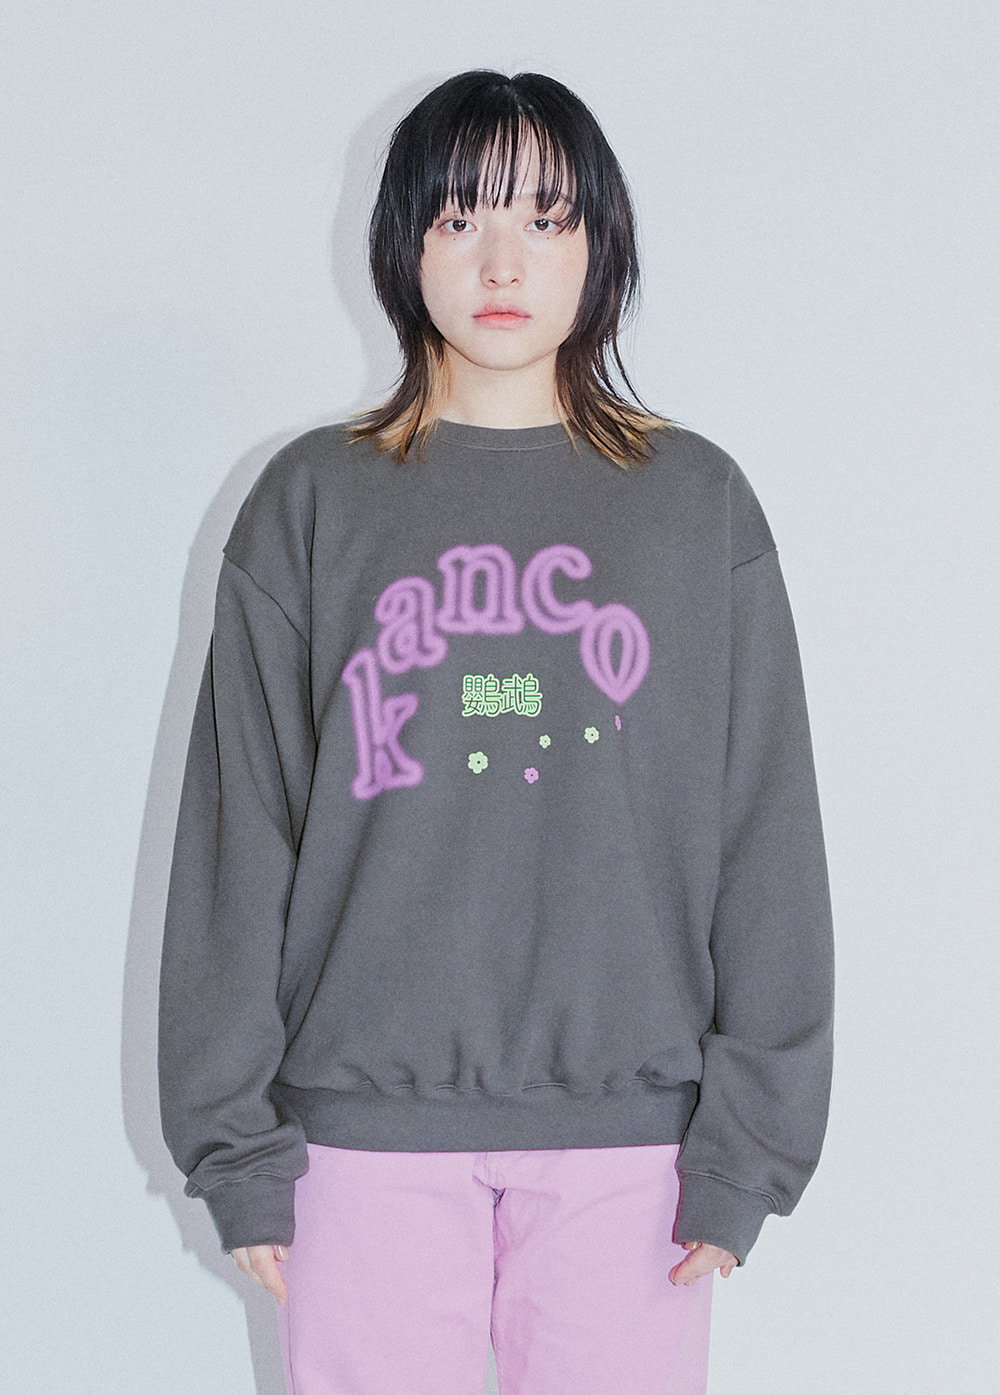 KANCO GLOW SWEATSHIRT dark gray